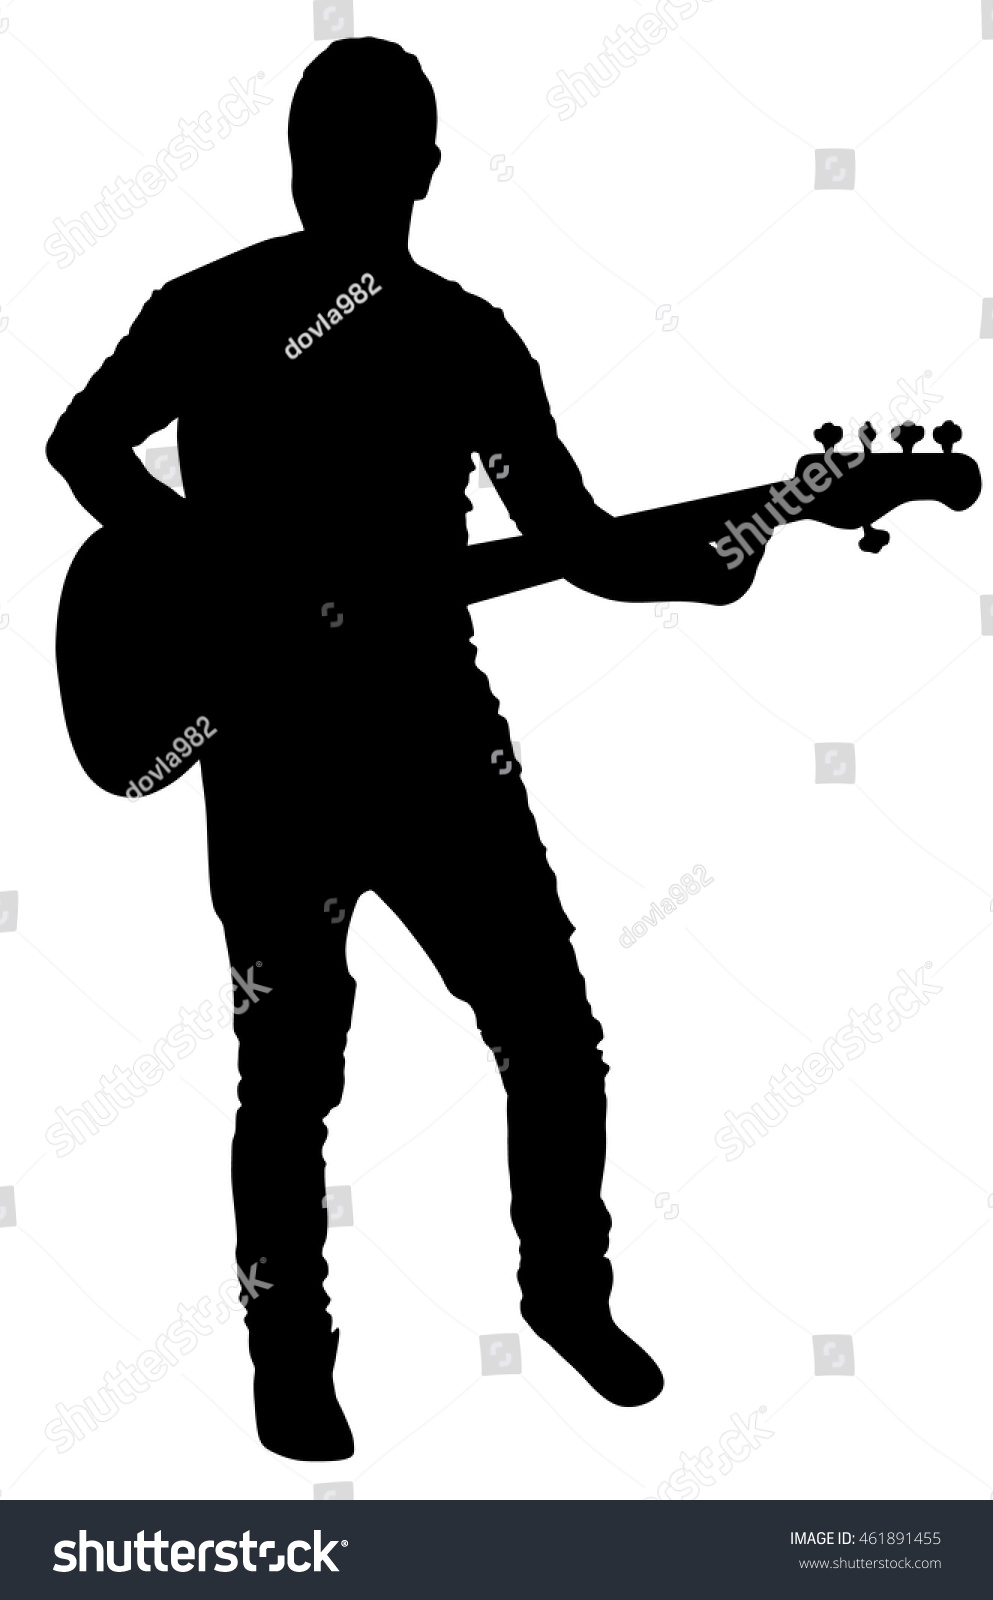 Guitarist Vector Silhouette Illustration Isolated On White Background Popular Music Super Star Stage